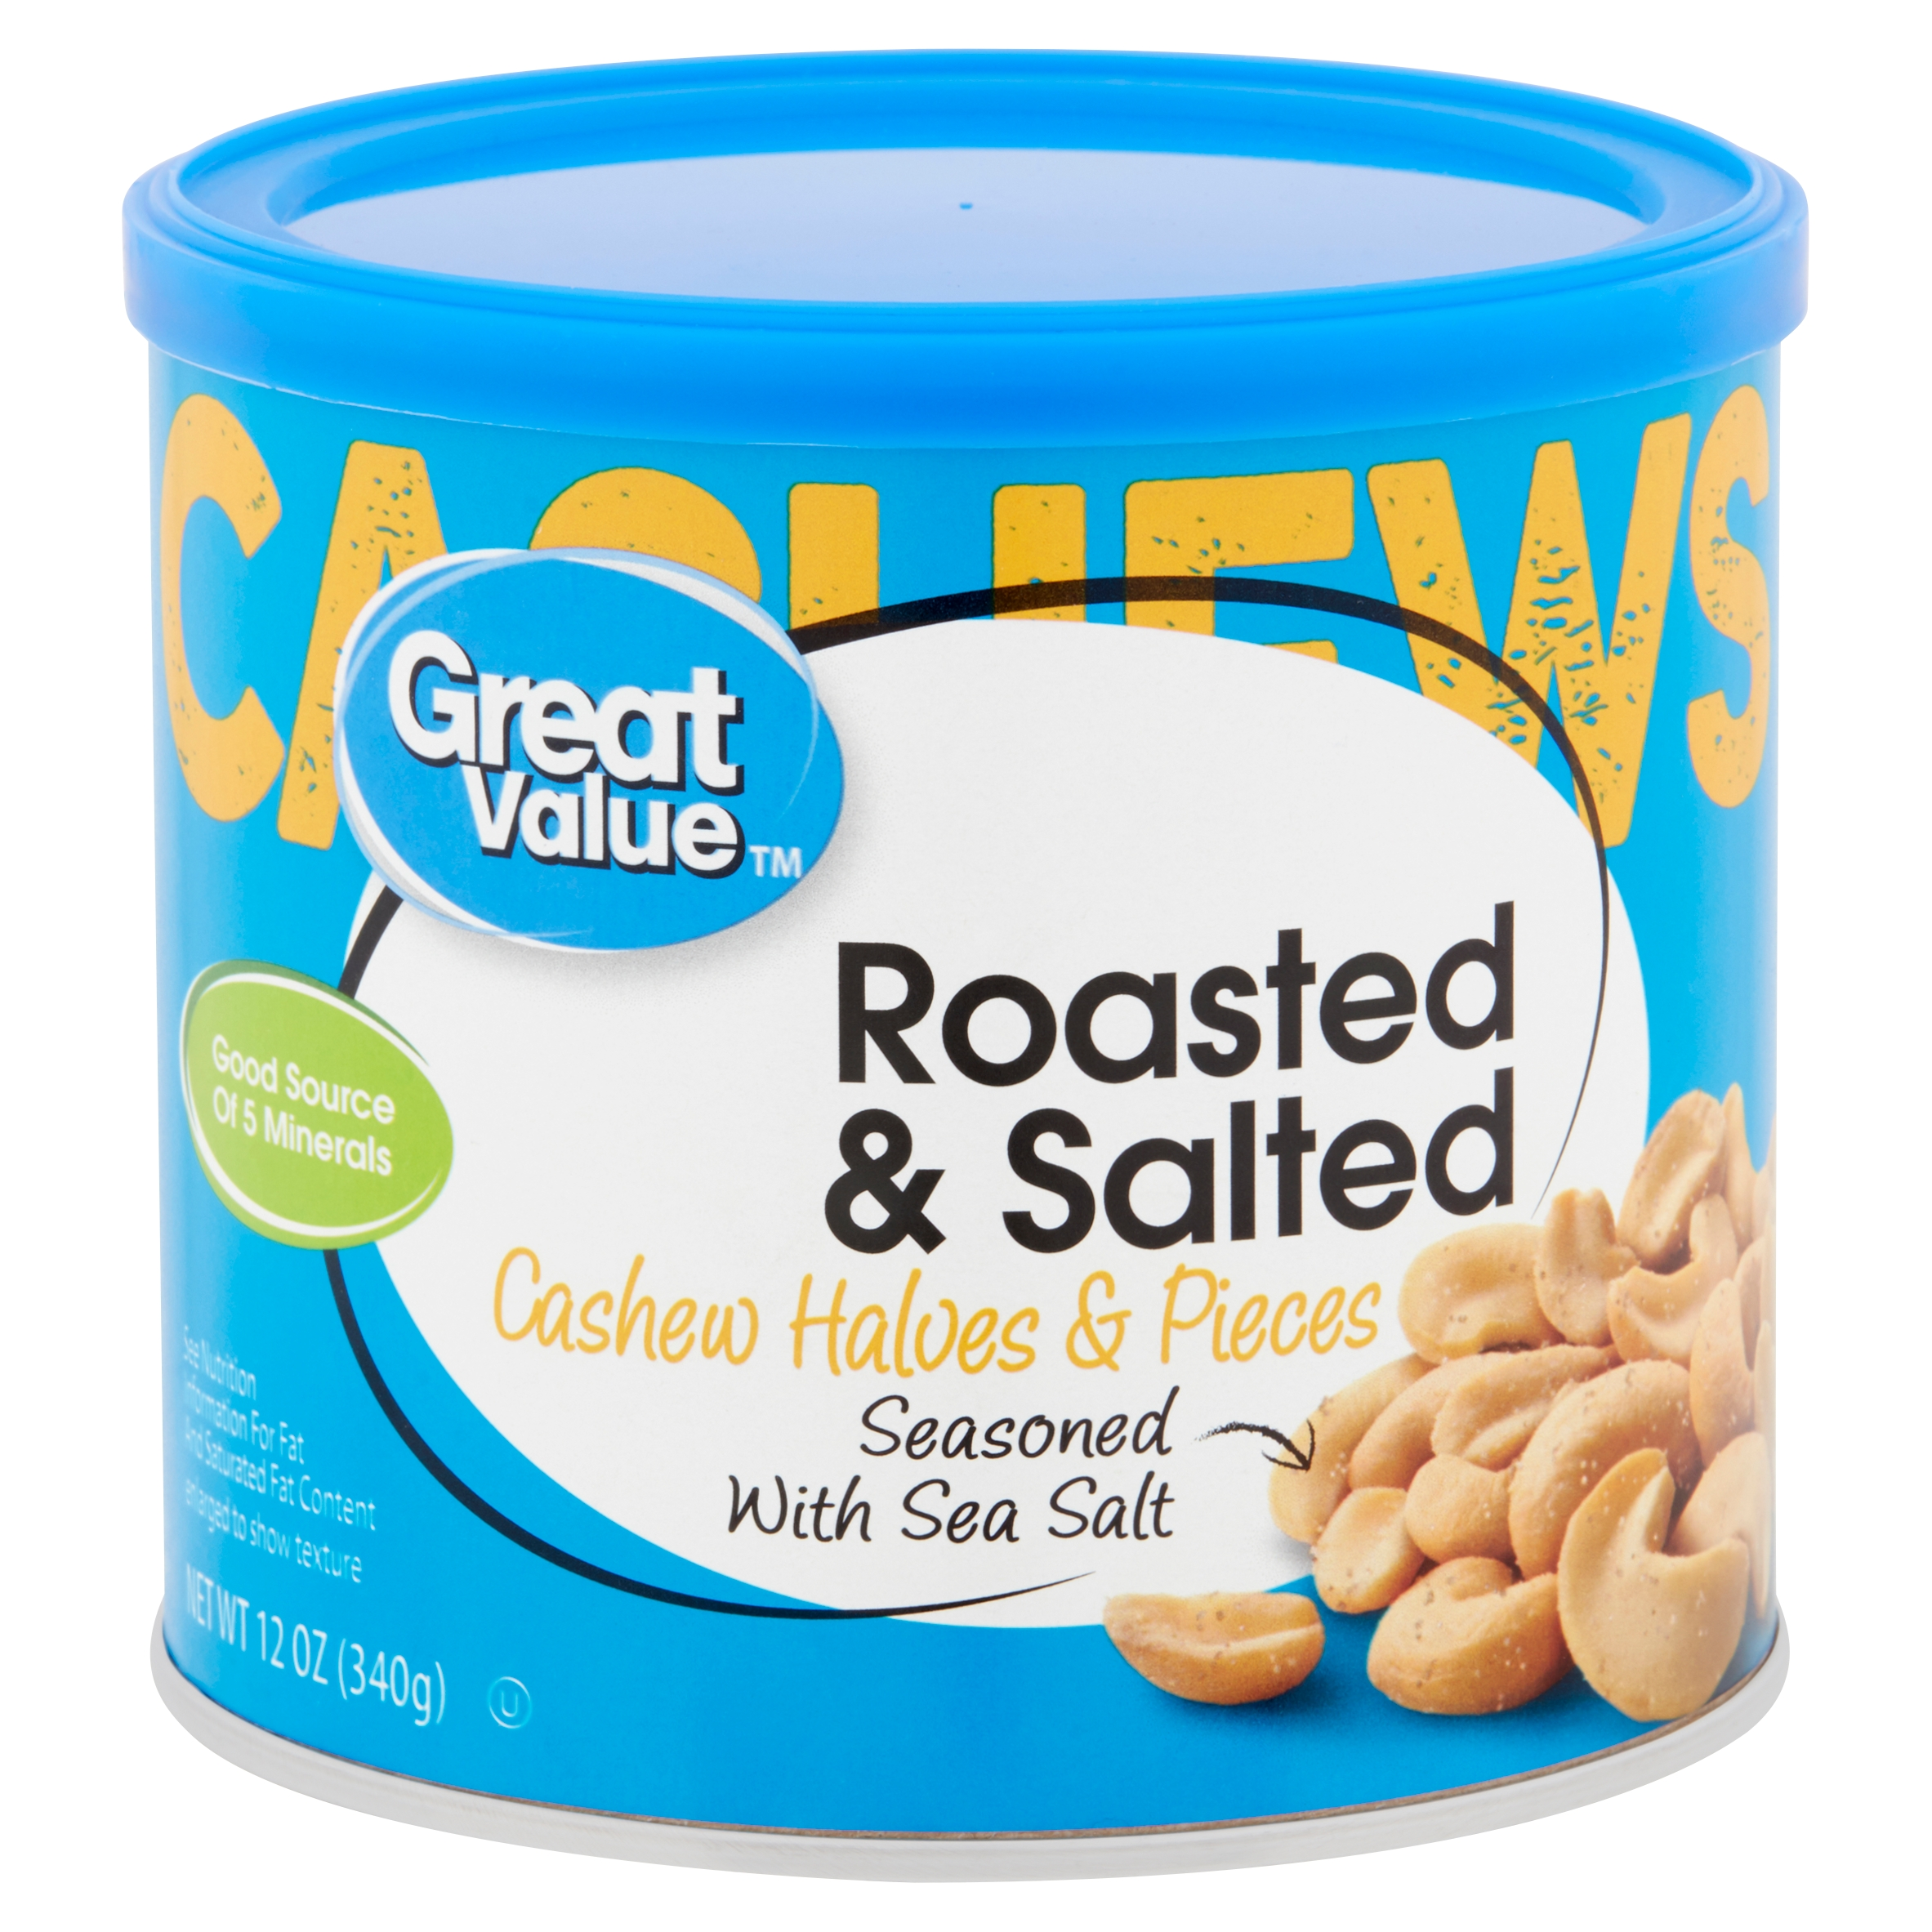 Great Value Roasted & Salted with Sea Salt Cashew Halves & Pieces, 12 Oz.